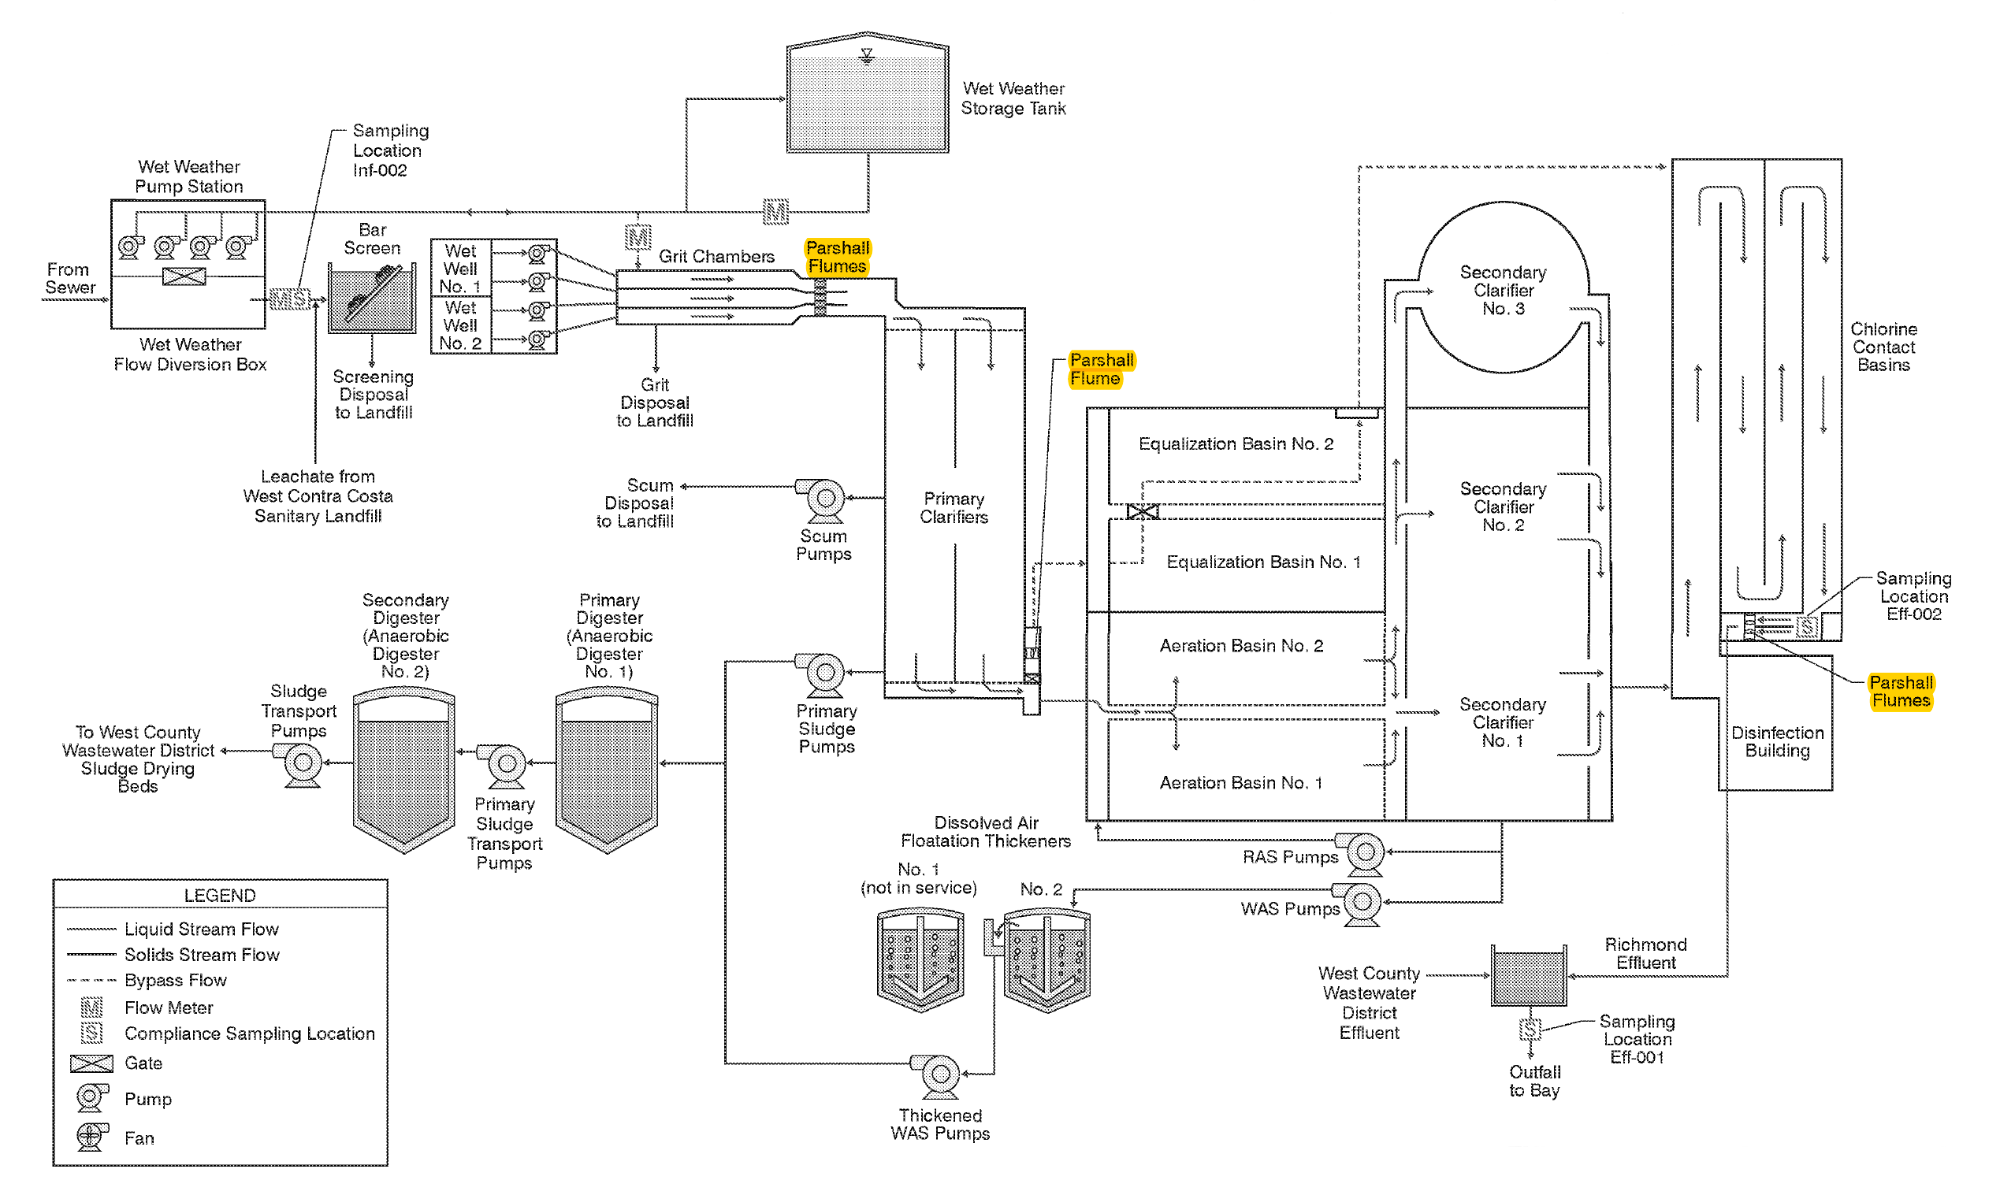 Where Are Parshall Flumes Used In Wastewater Treatment